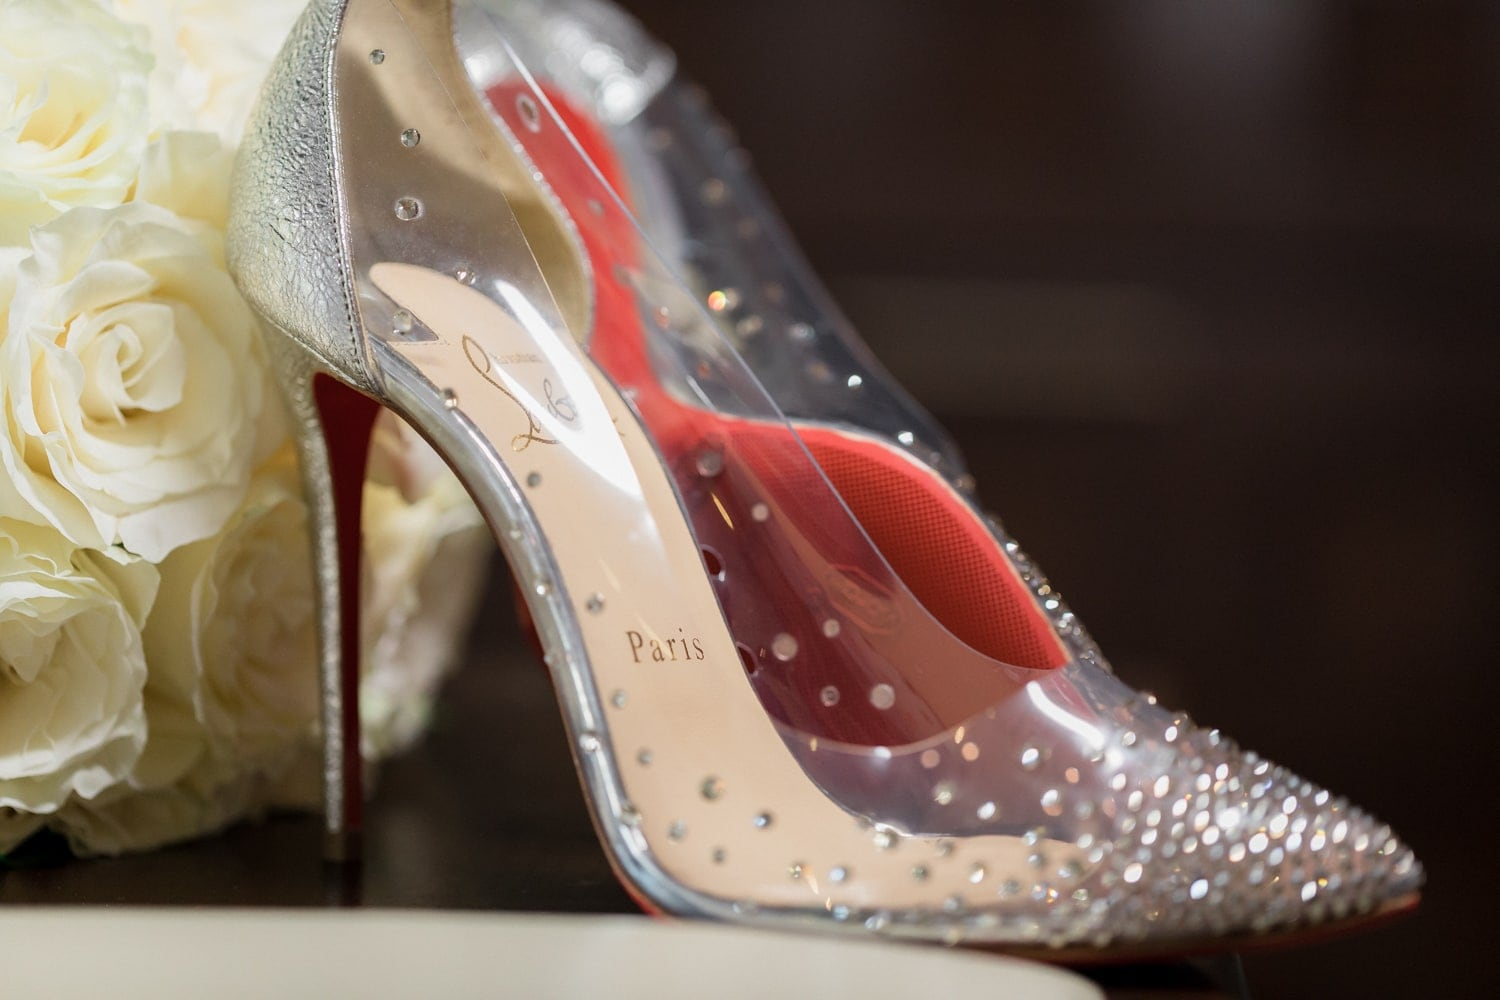 Bride's stylish shoes for her big wedding at Hard Rock Resort, Dominican Republic.